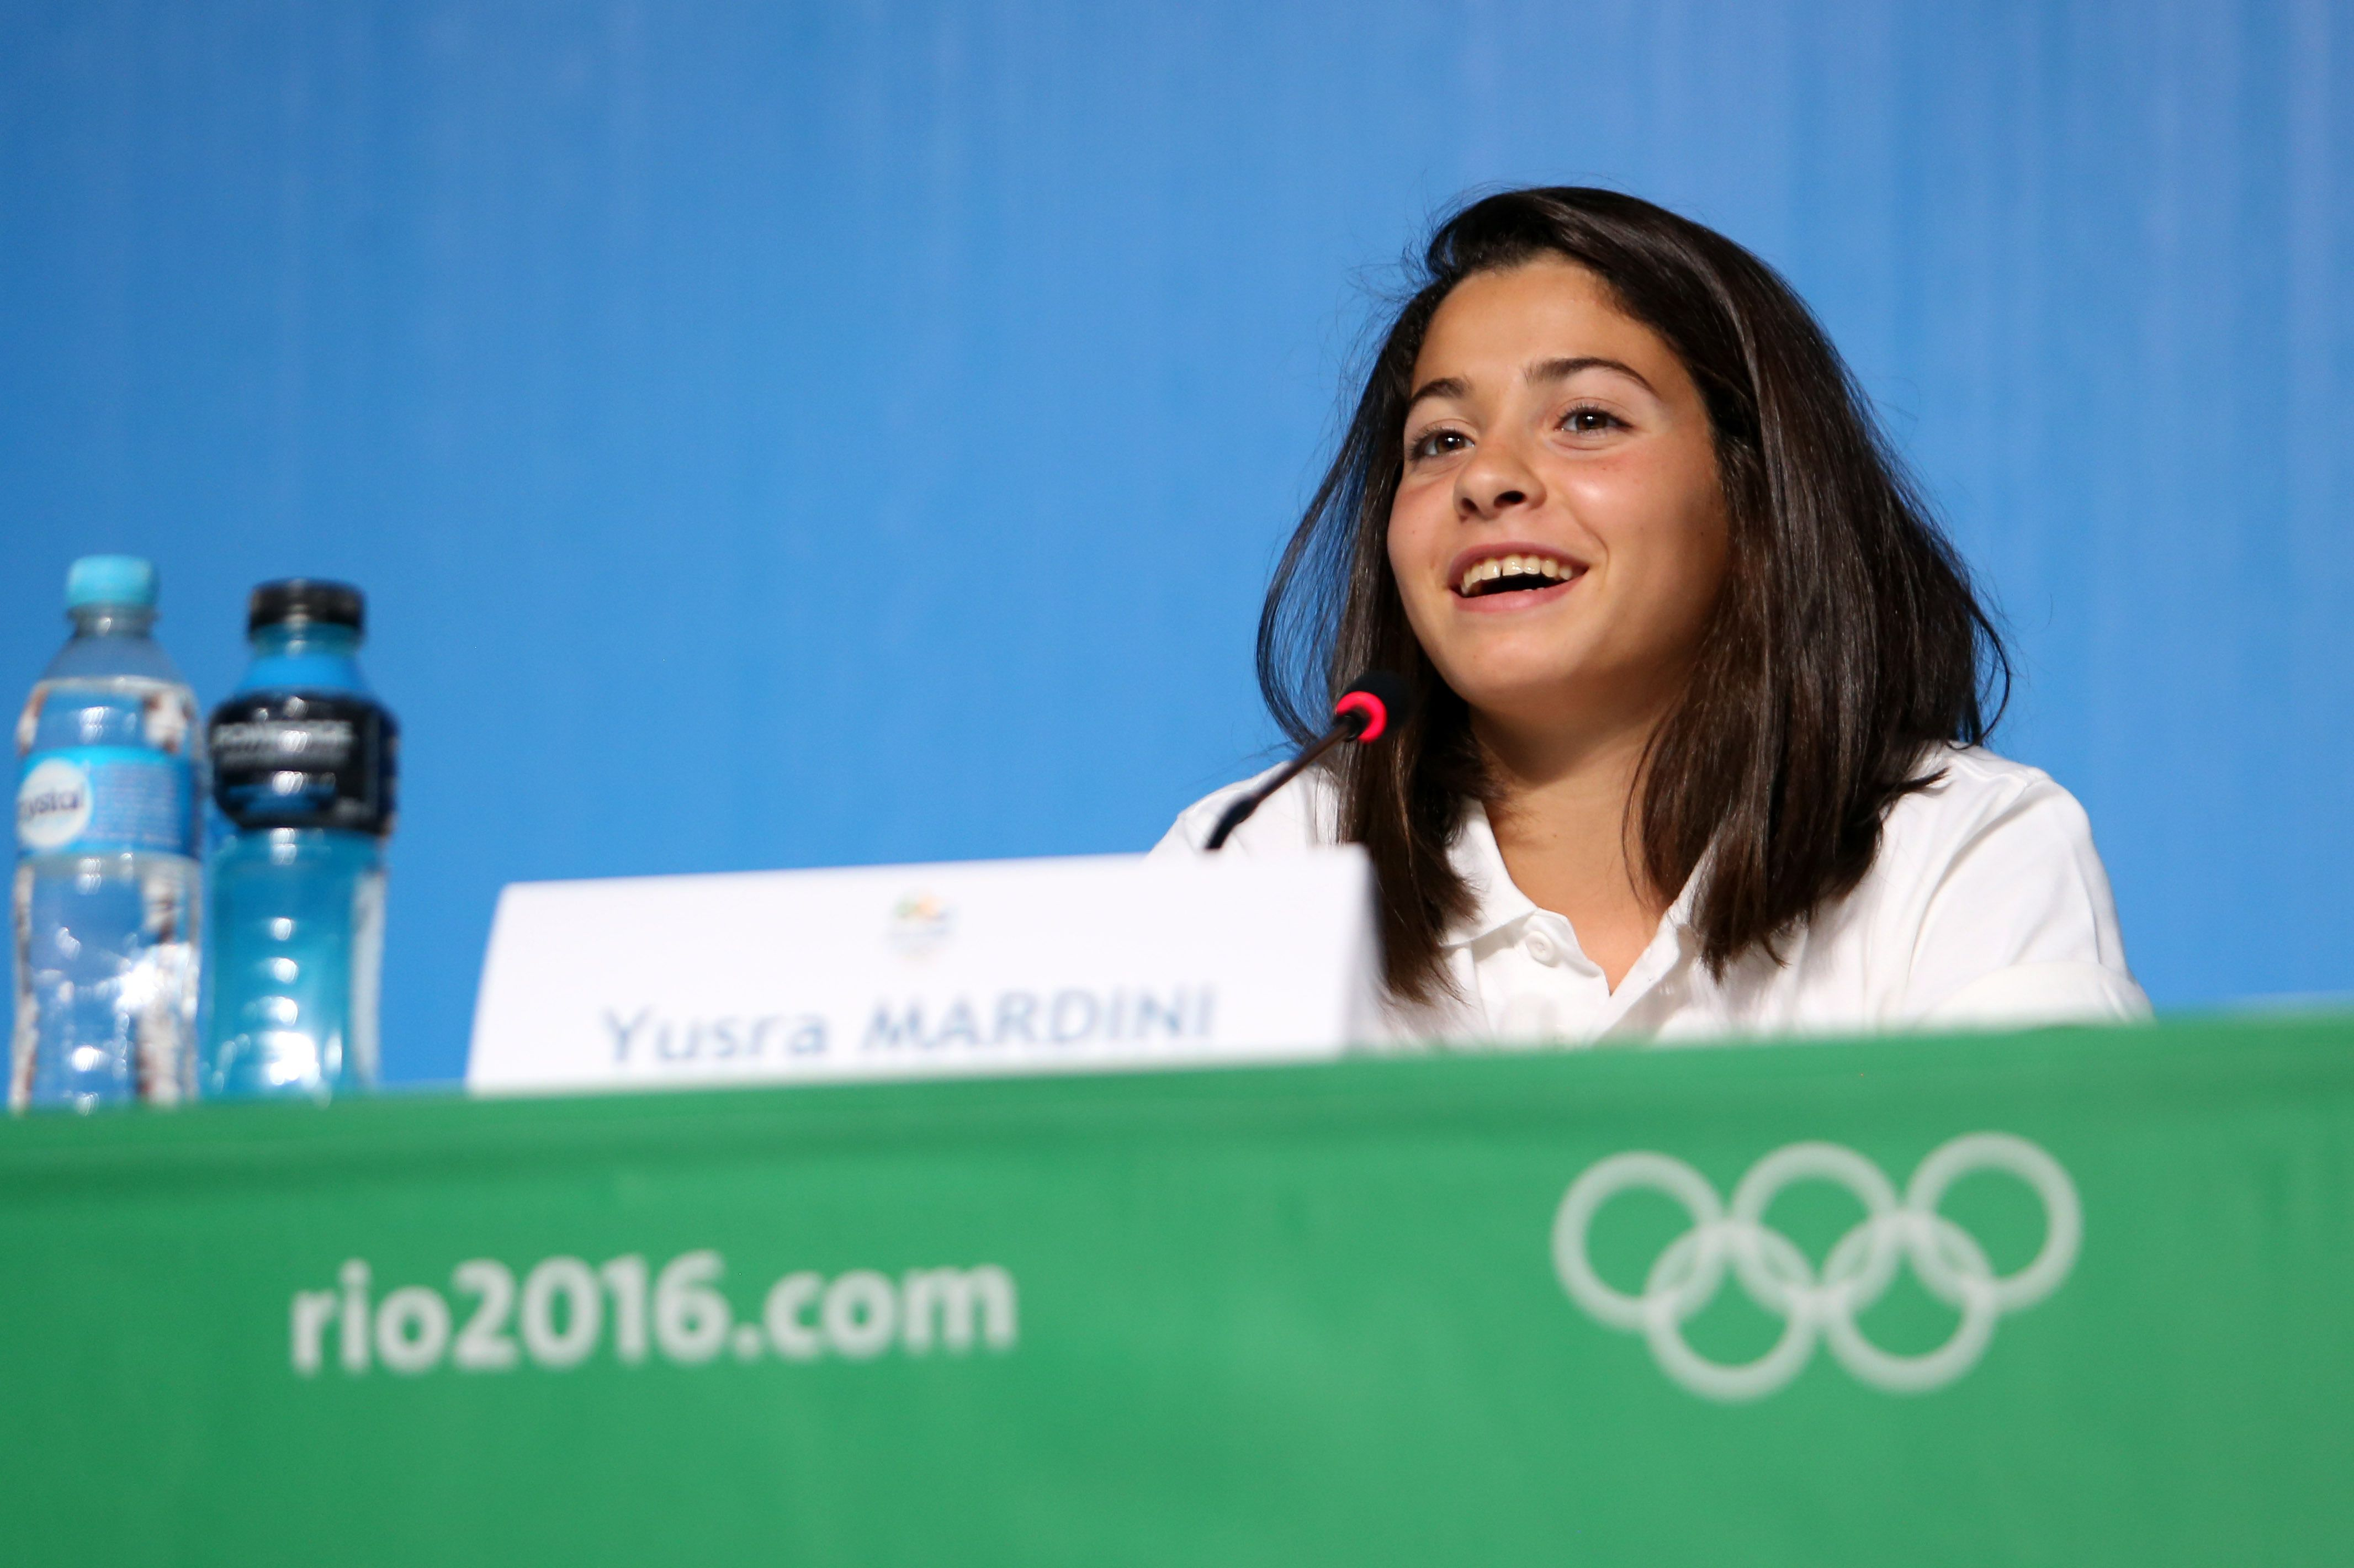 Syria's swimmer Yusra Mardini attends a press conference of the Refugee Olympics Team at the Main Press Center (MPC) of Rio Olympic Games in Rio de Janeiro, Brazil, on July 30, 2016.